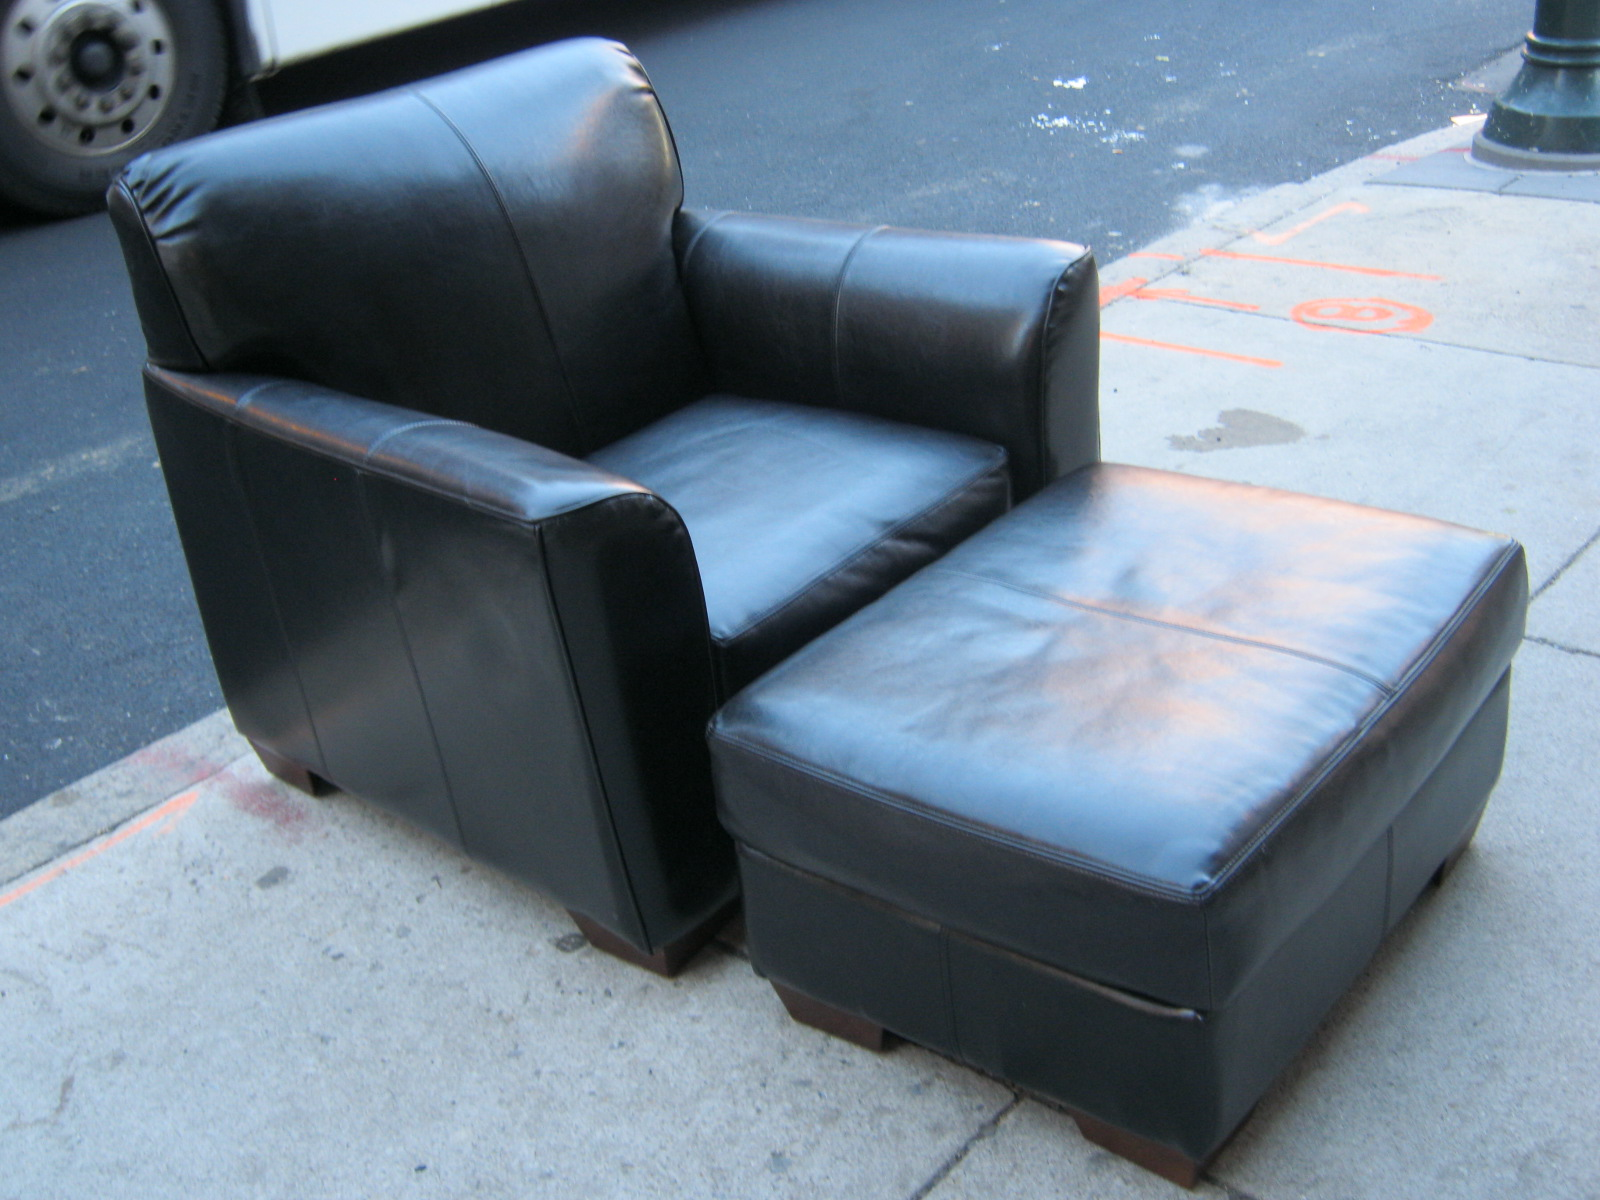 Leather Chairs With Ottoman Uhuru Furniture Collectibles Black Leather Chair And Ottoman Sold